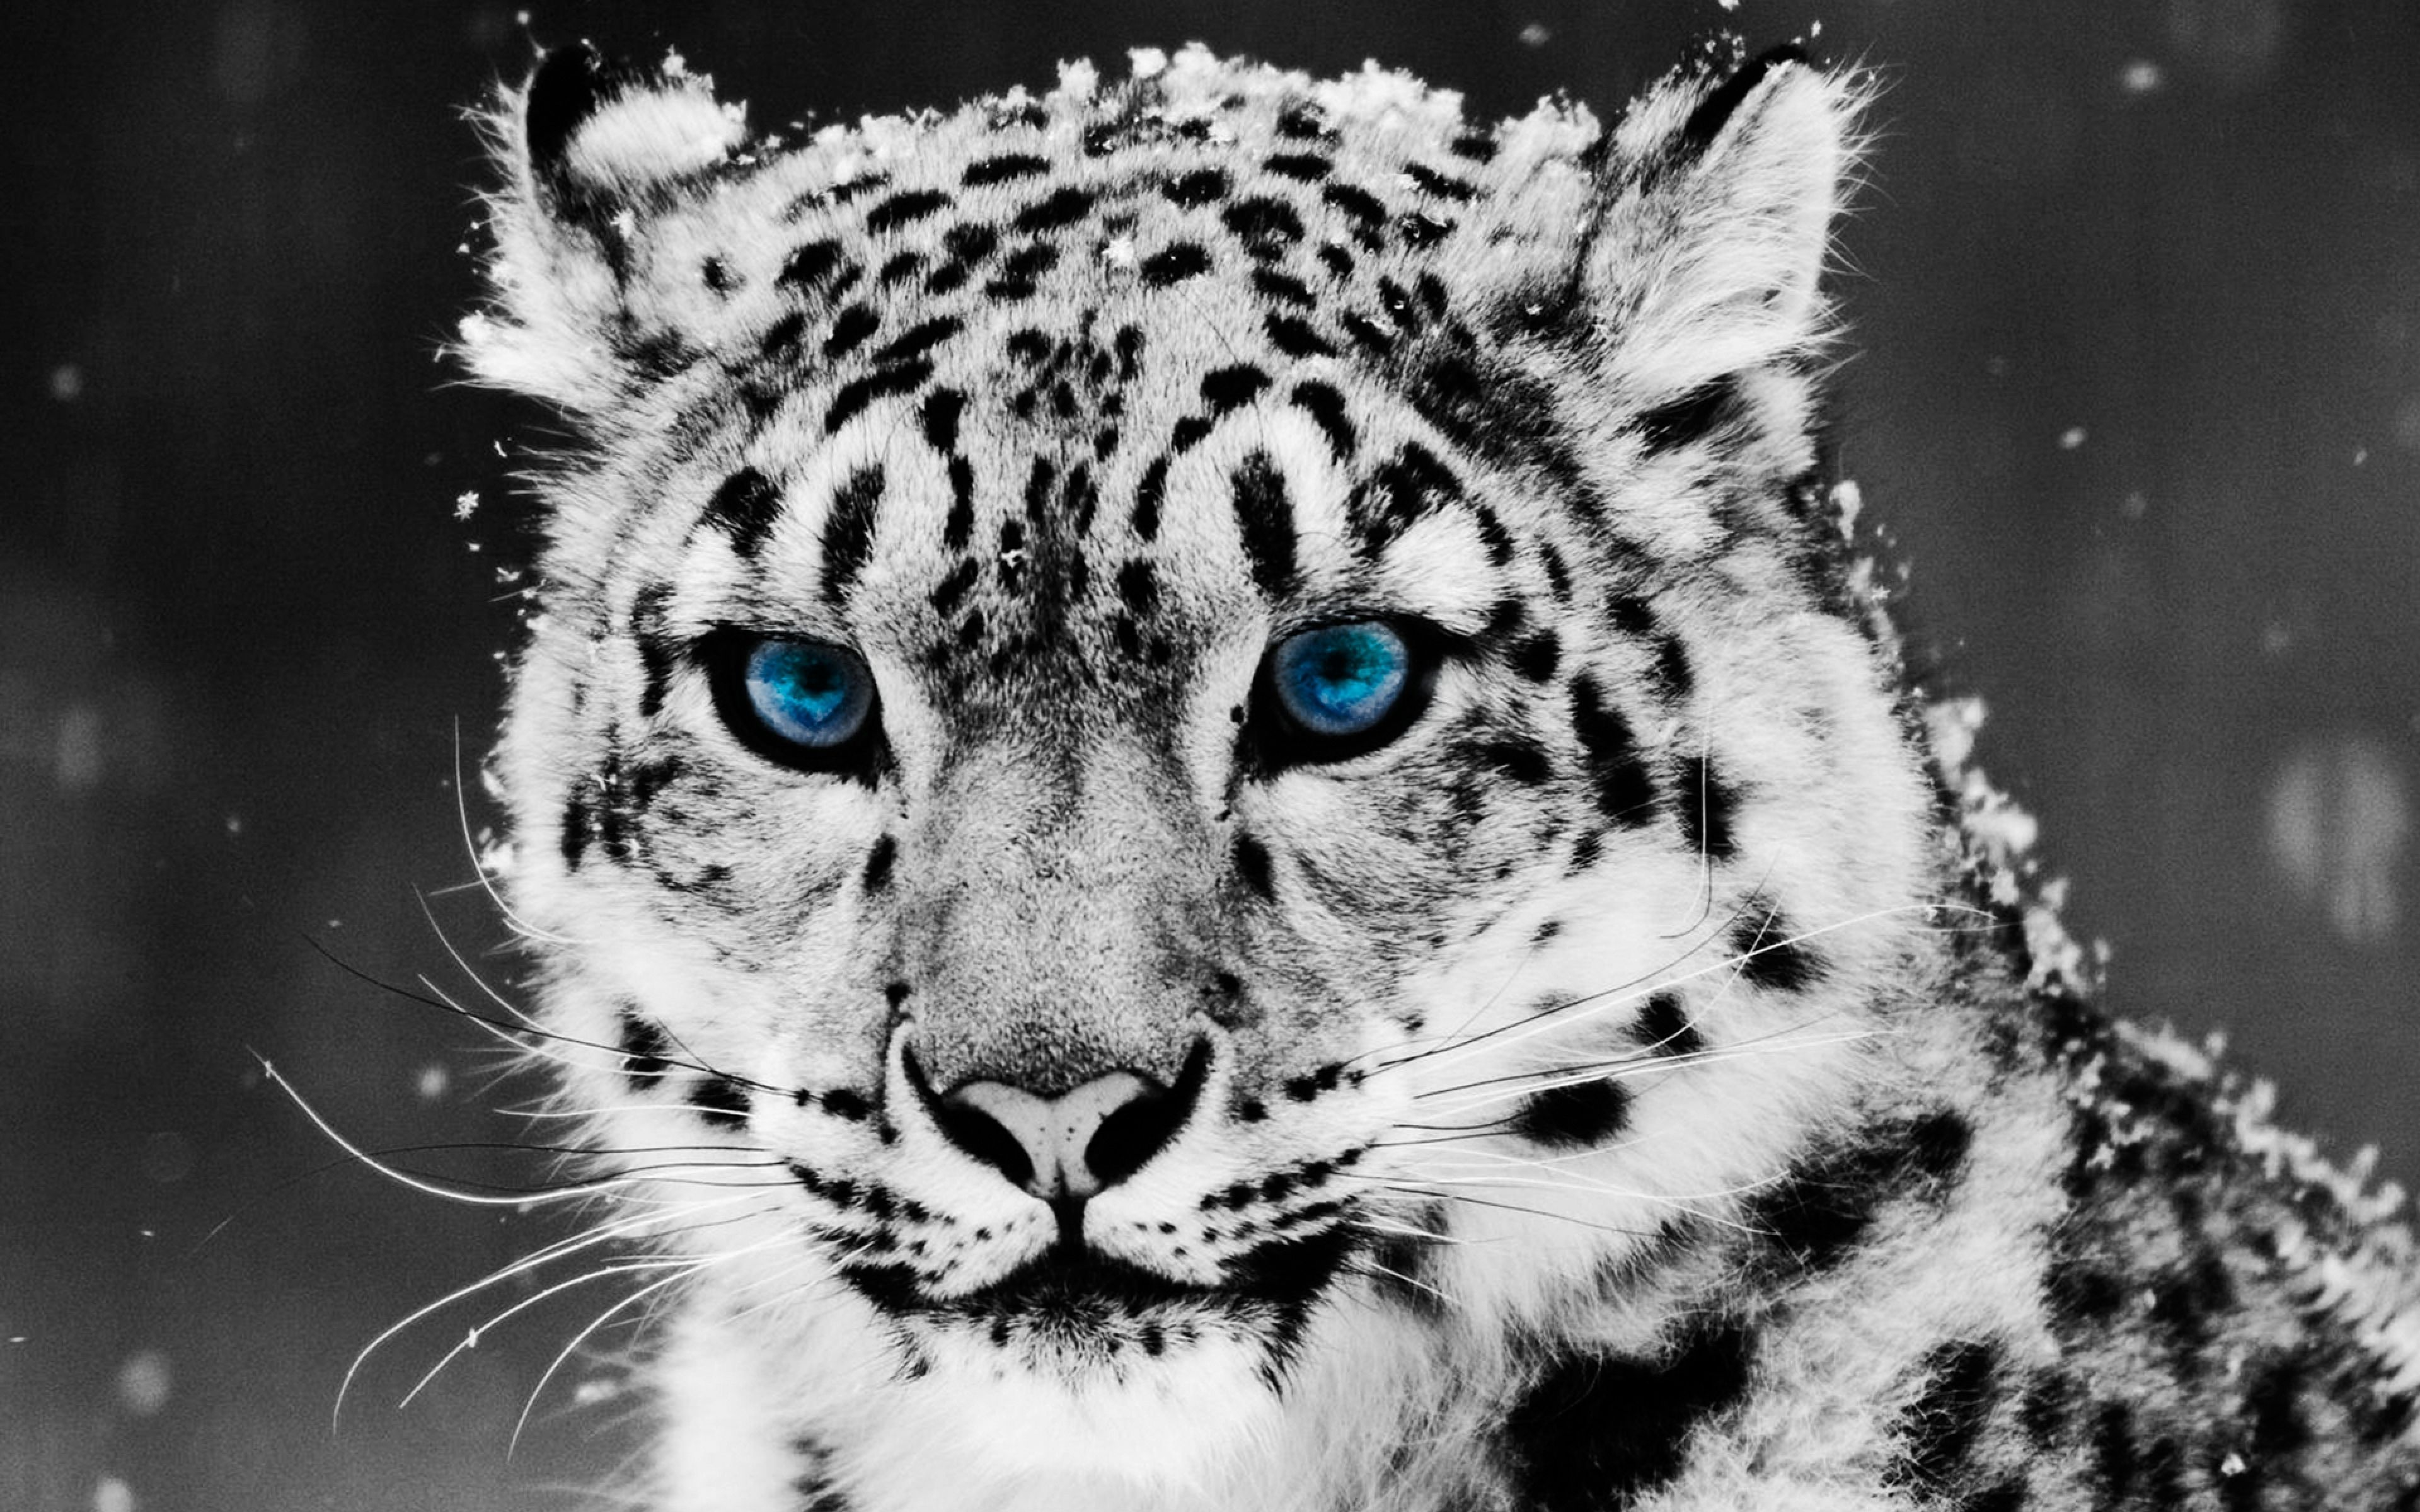 Ultra Hd 4k Snow Leopard Wallpapers Hd Desktop Backgrounds 3840x2400 Downloads All Time Leopard Pictures Animals Beautiful Snow Leopard Wallpaper